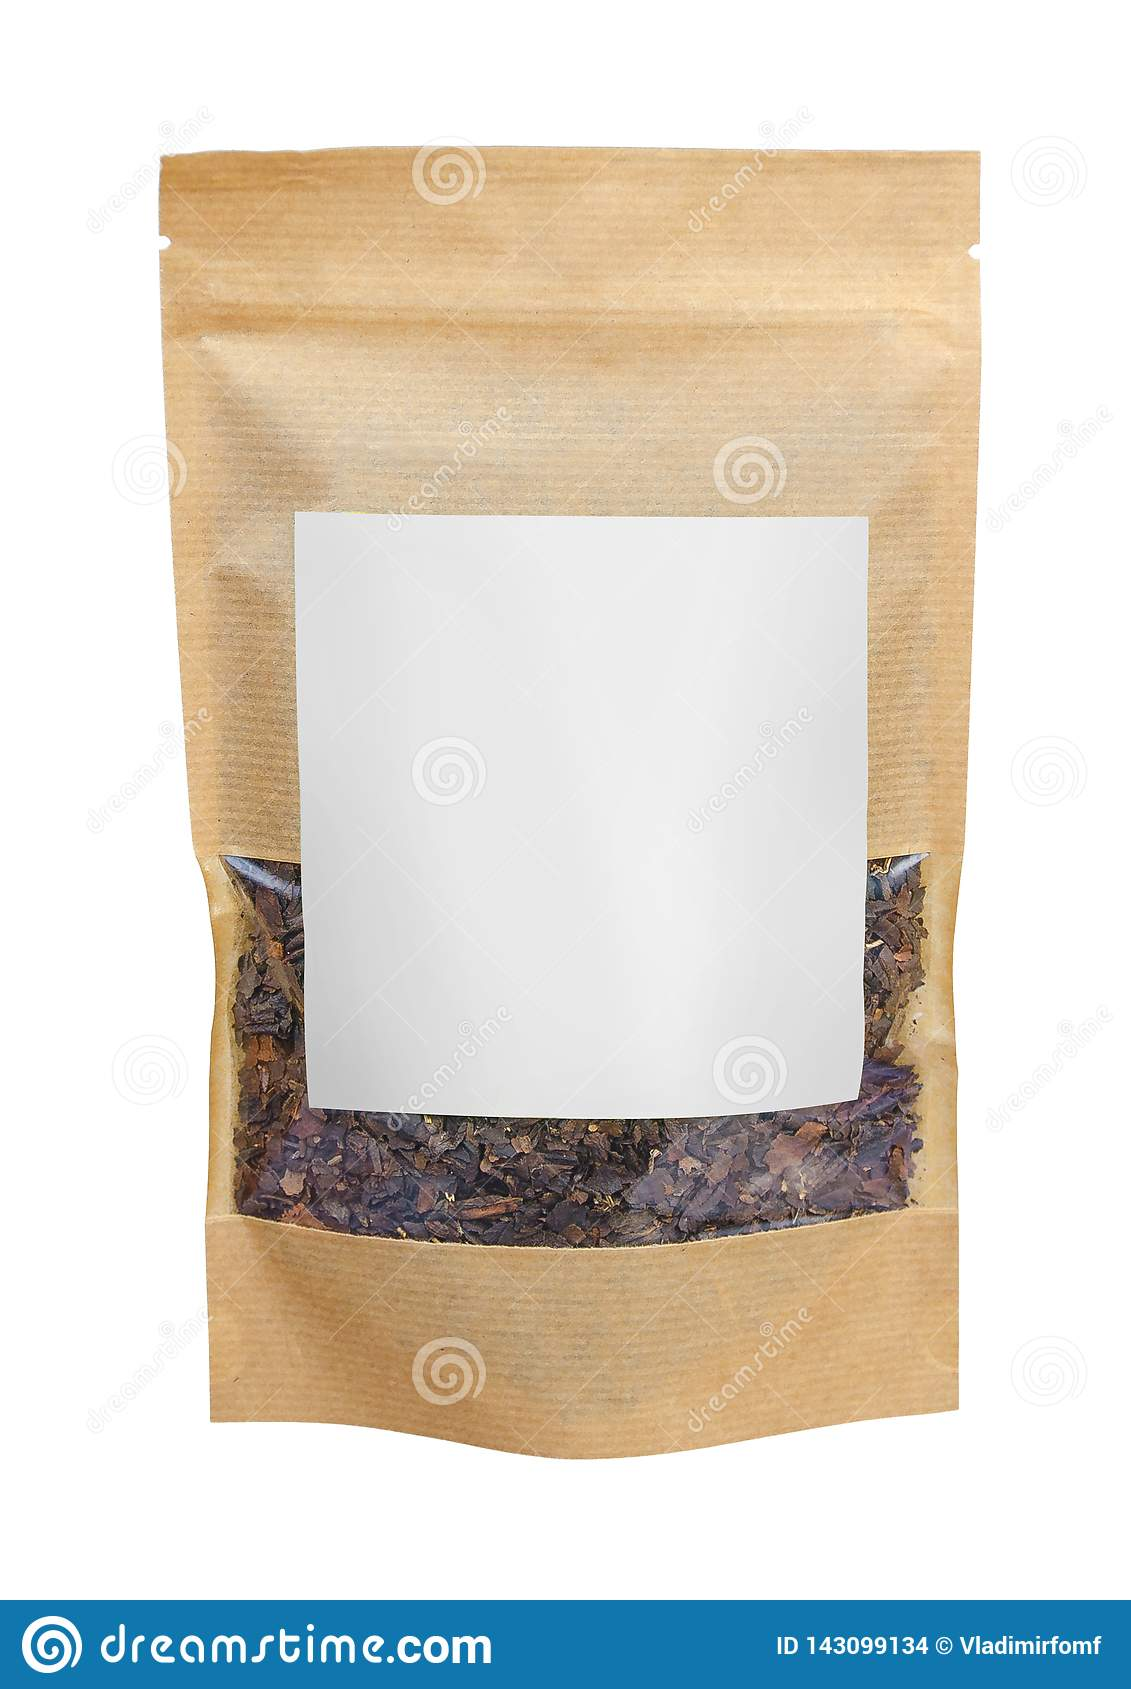 Craft paper pouch bag with herbal tea isolated on white background. Packaging template mockup.